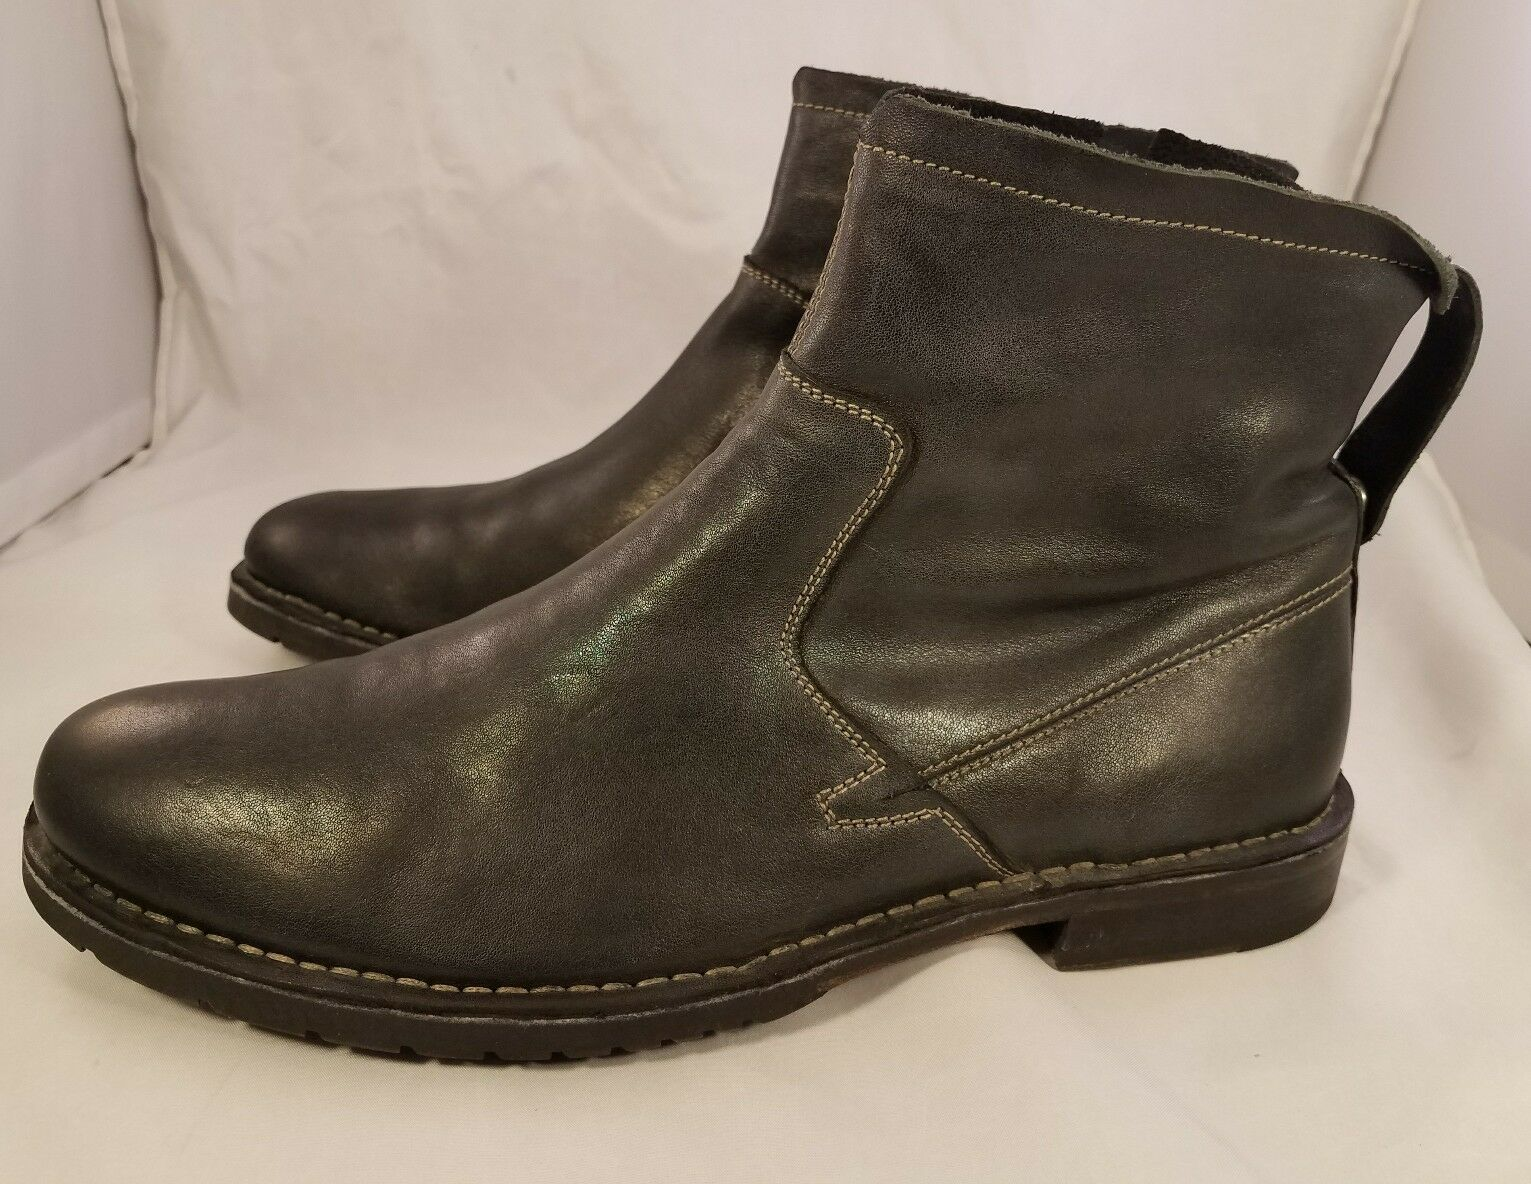 John Varvatos man man man boots dark gray charcoal side zipper 9.5 M excellent 9647d2